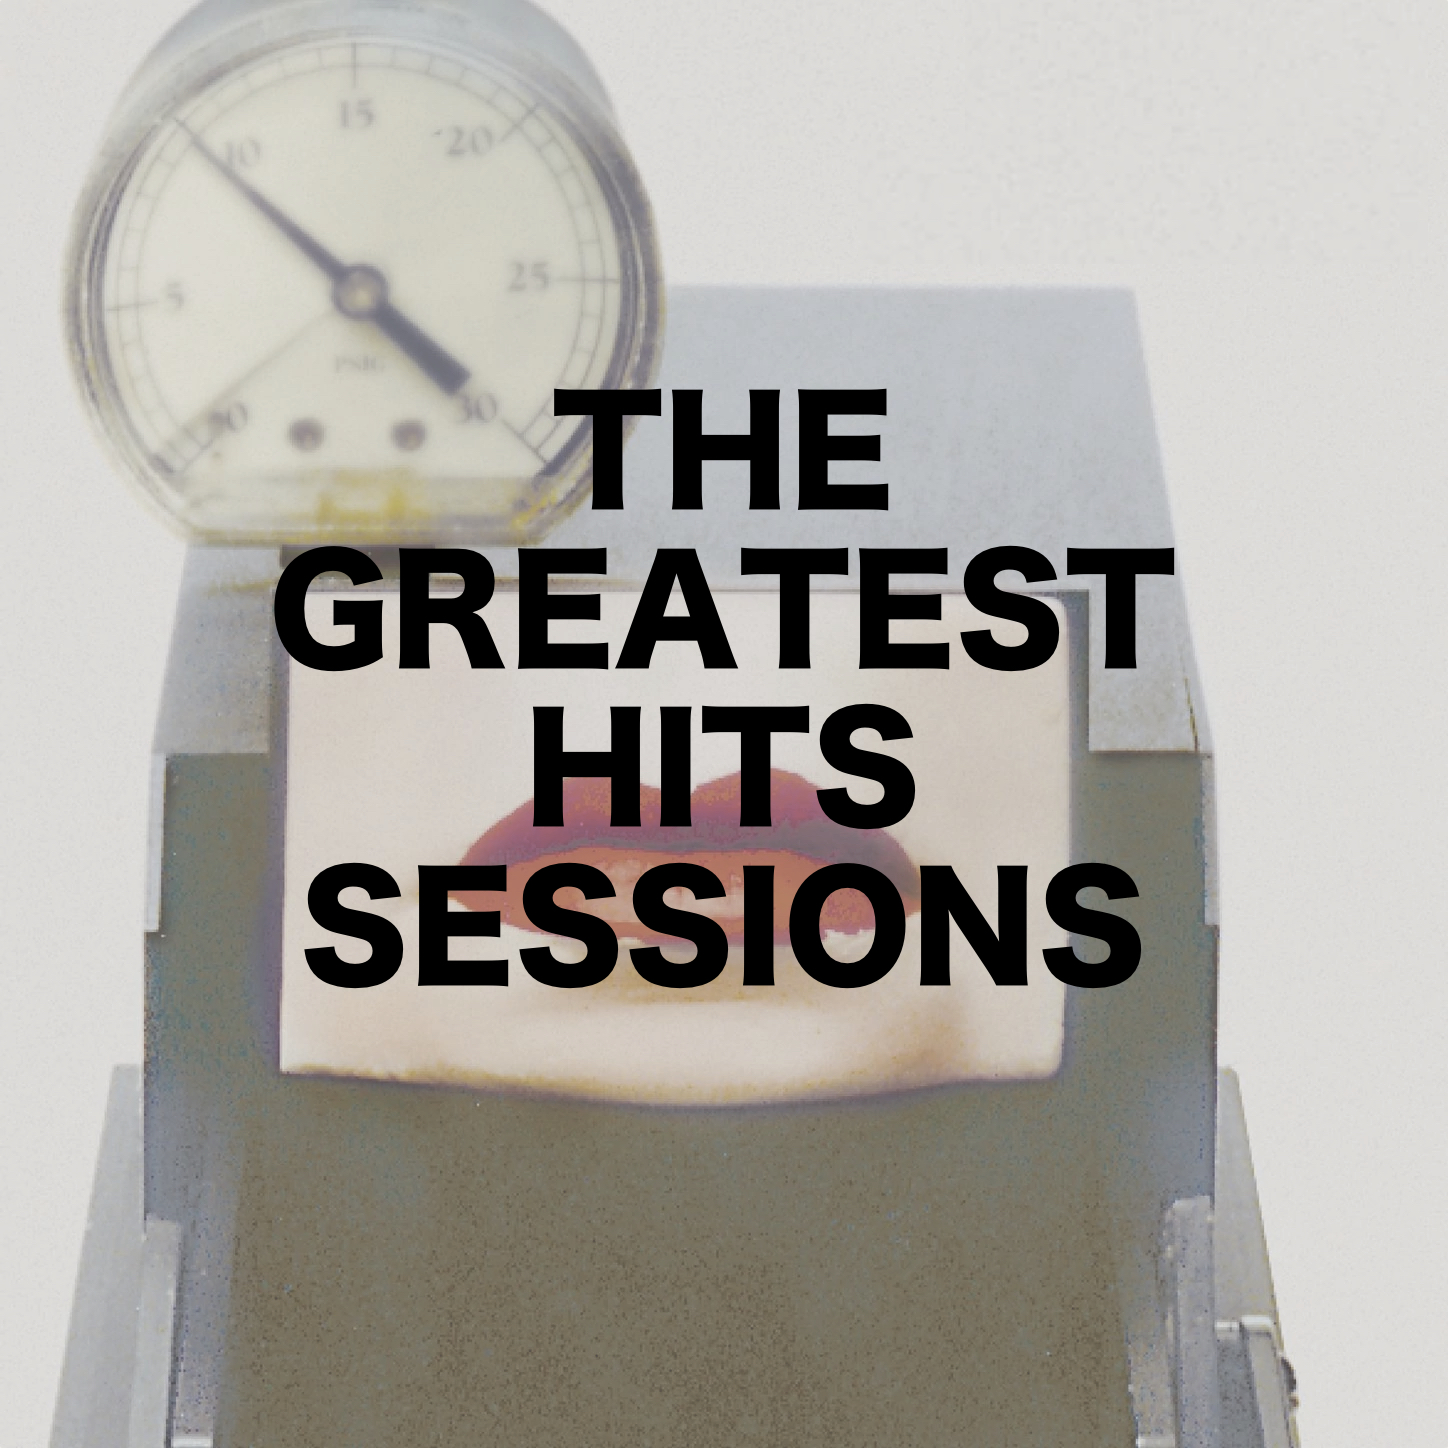 THE GREATEST HITS SESSIONS